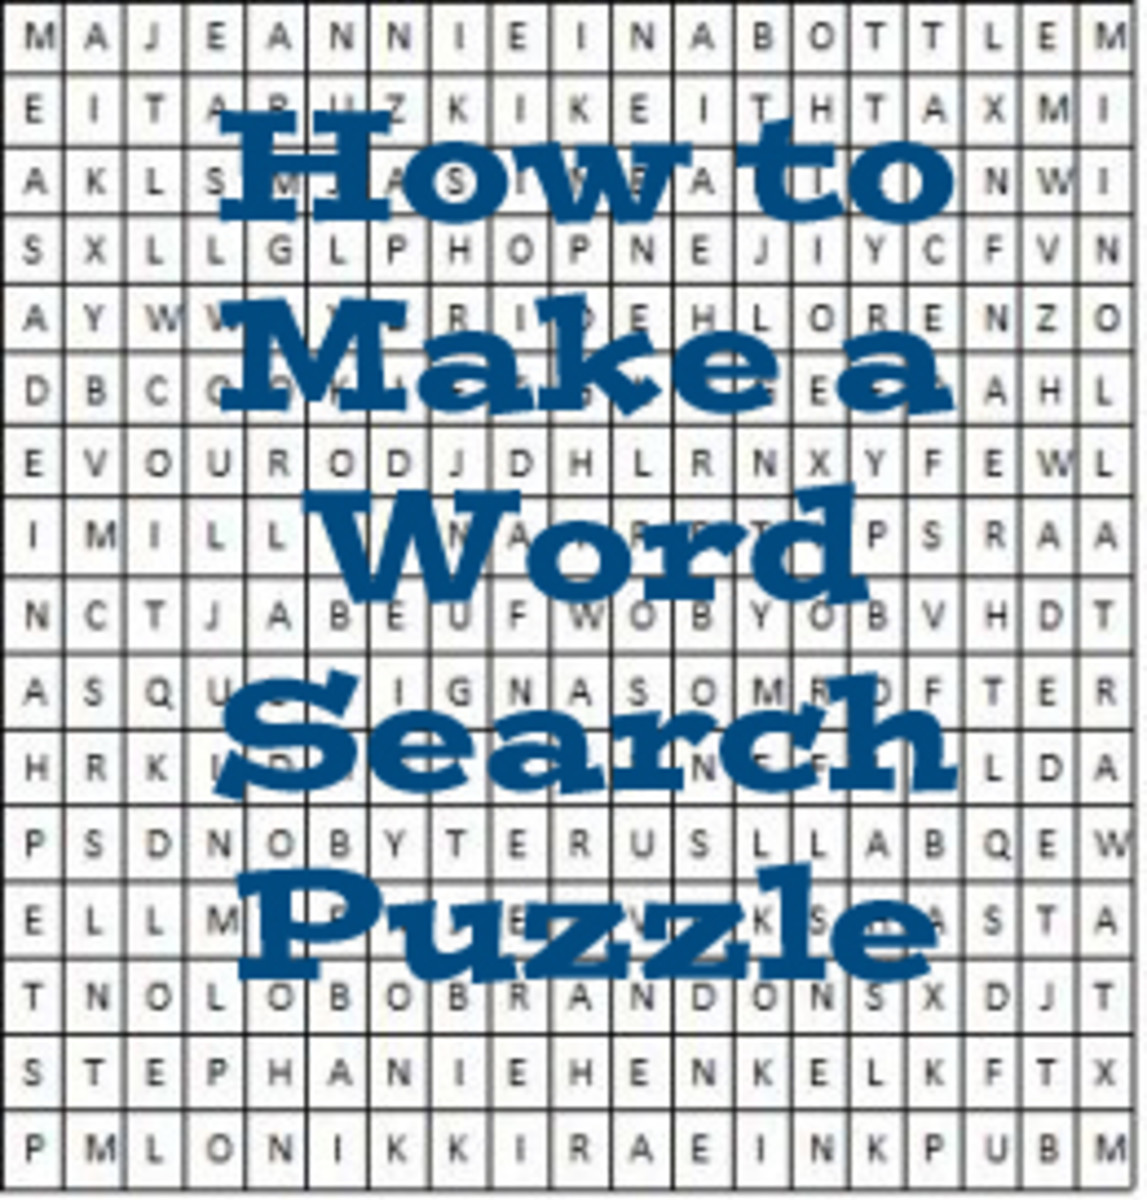 Create your own word search puzzle, using words that you choose. It's easy!